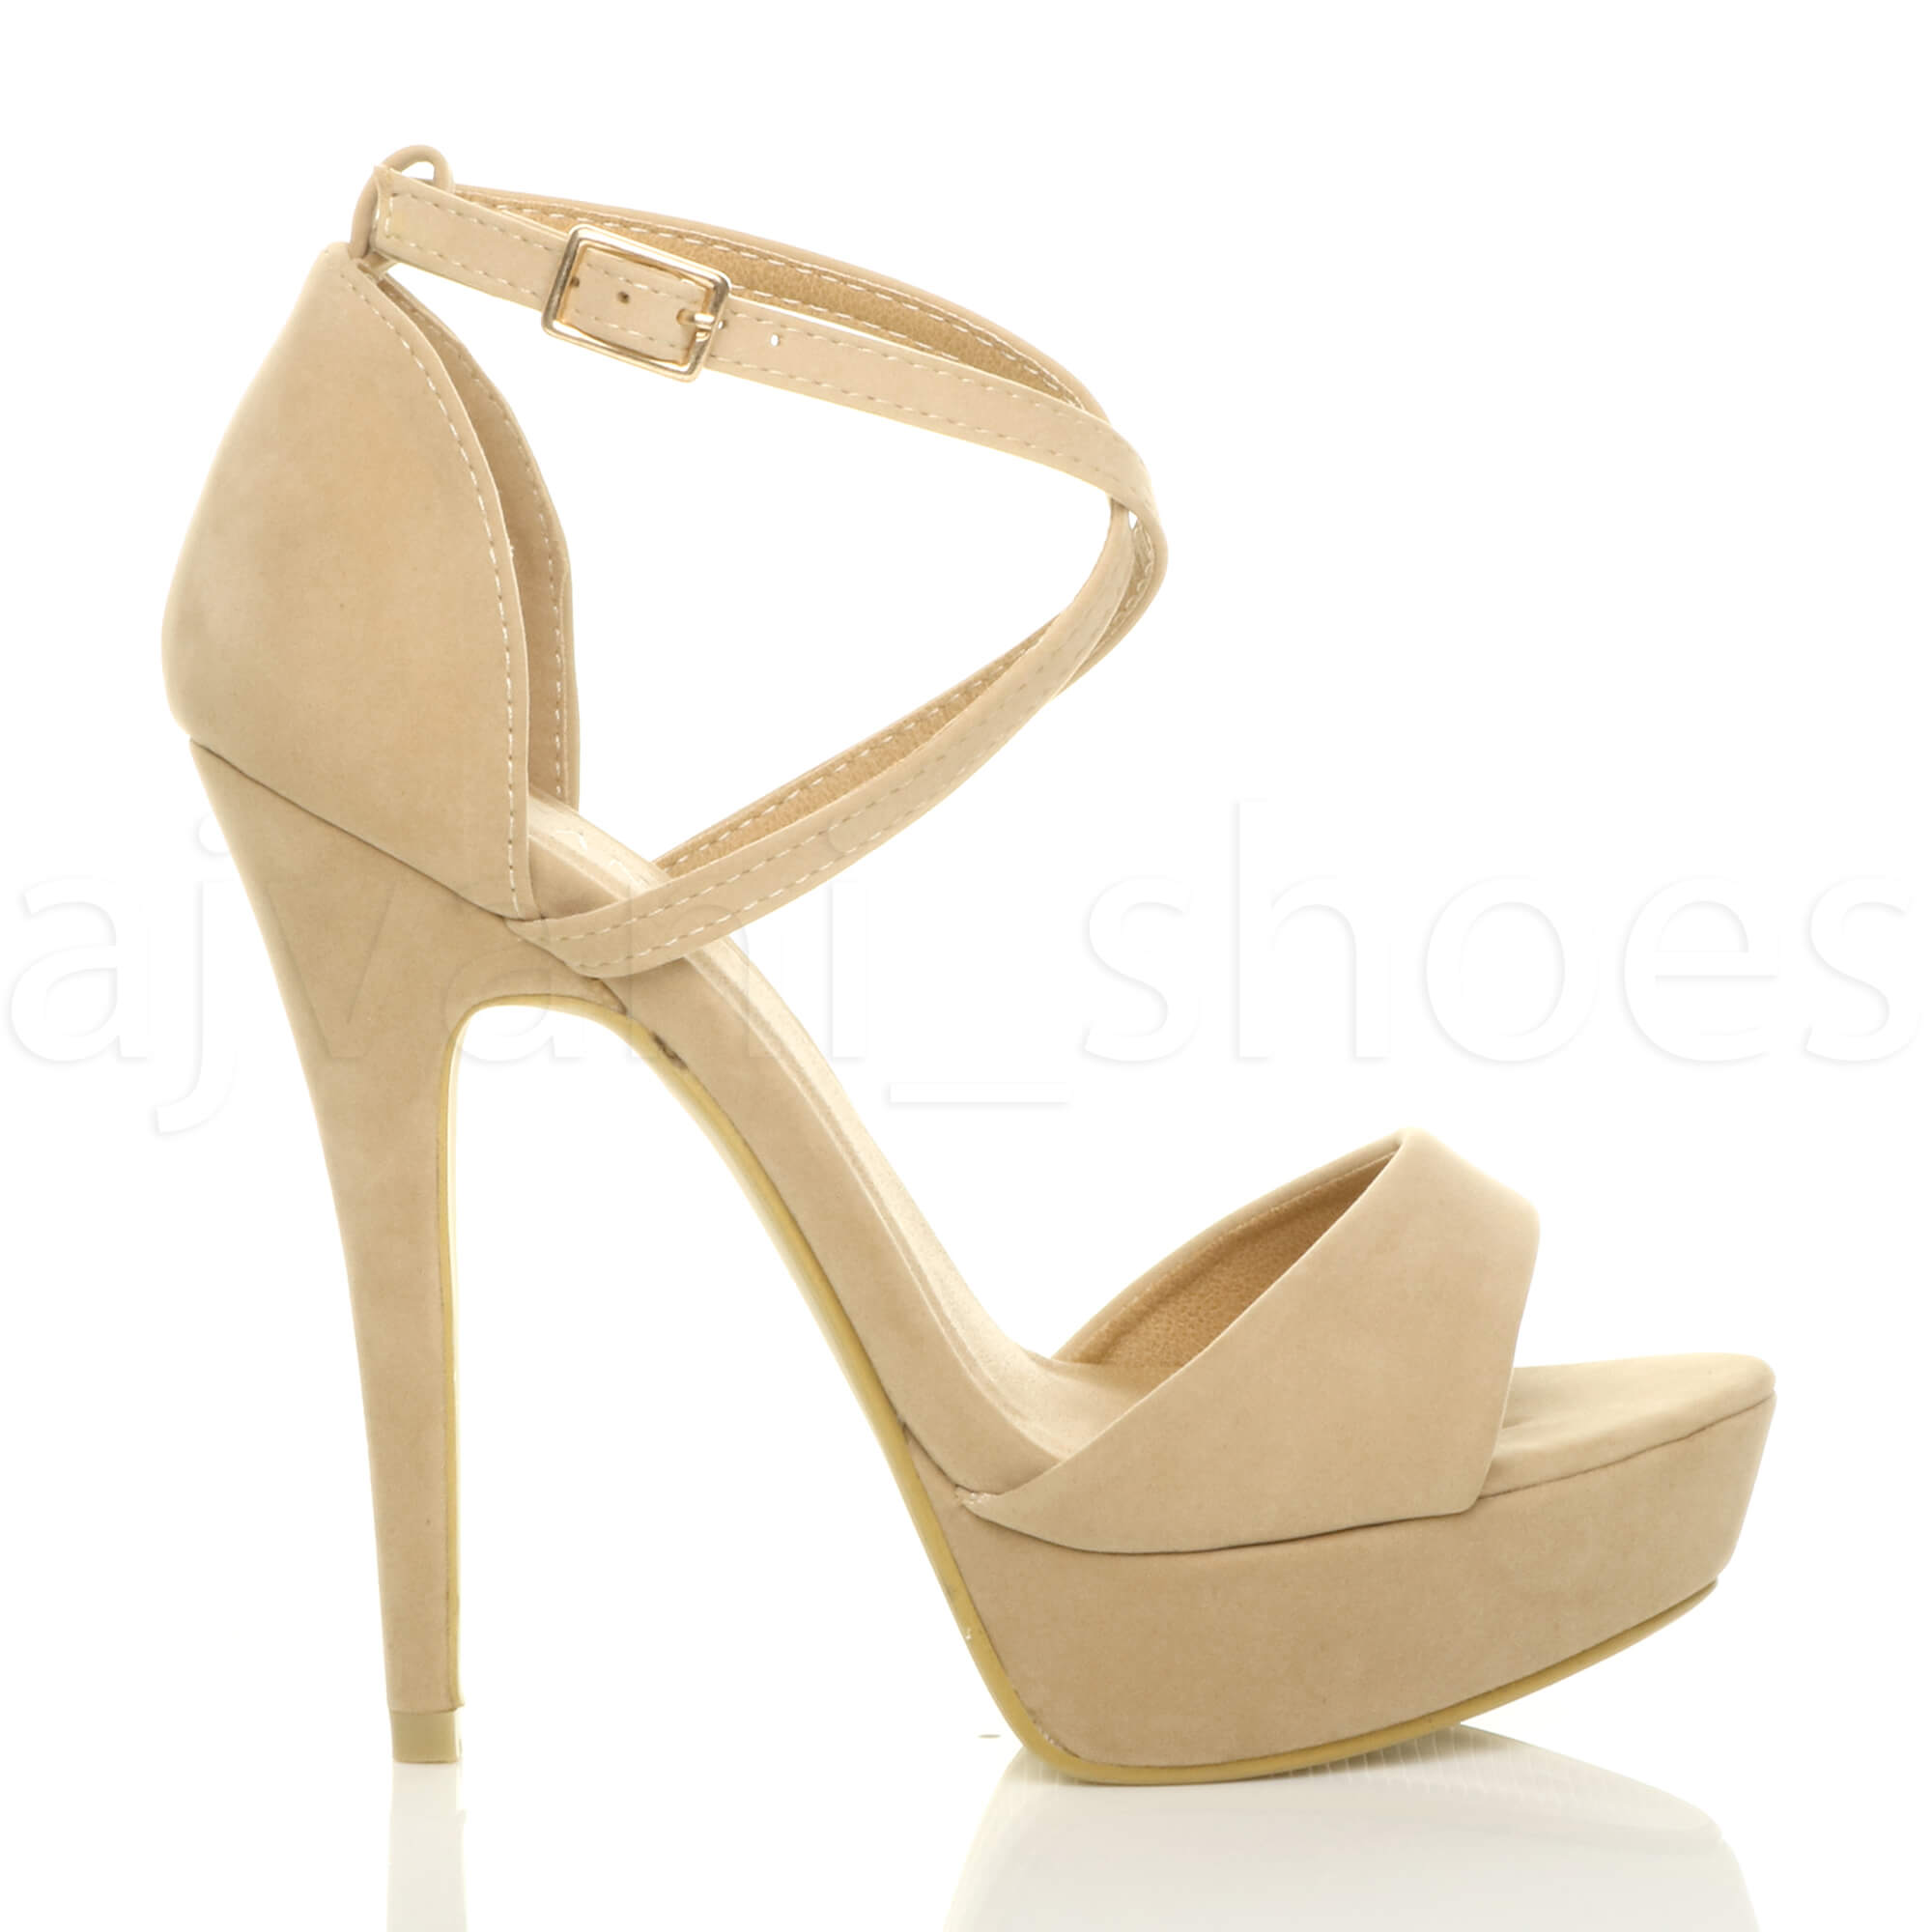 WOMENS-LADIES-PLATFORM-HIGH-HEEL-PEEP-TOE-CROSS-OVER-STRAPPY-SANDALS-SHOES-SIZE thumbnail 70